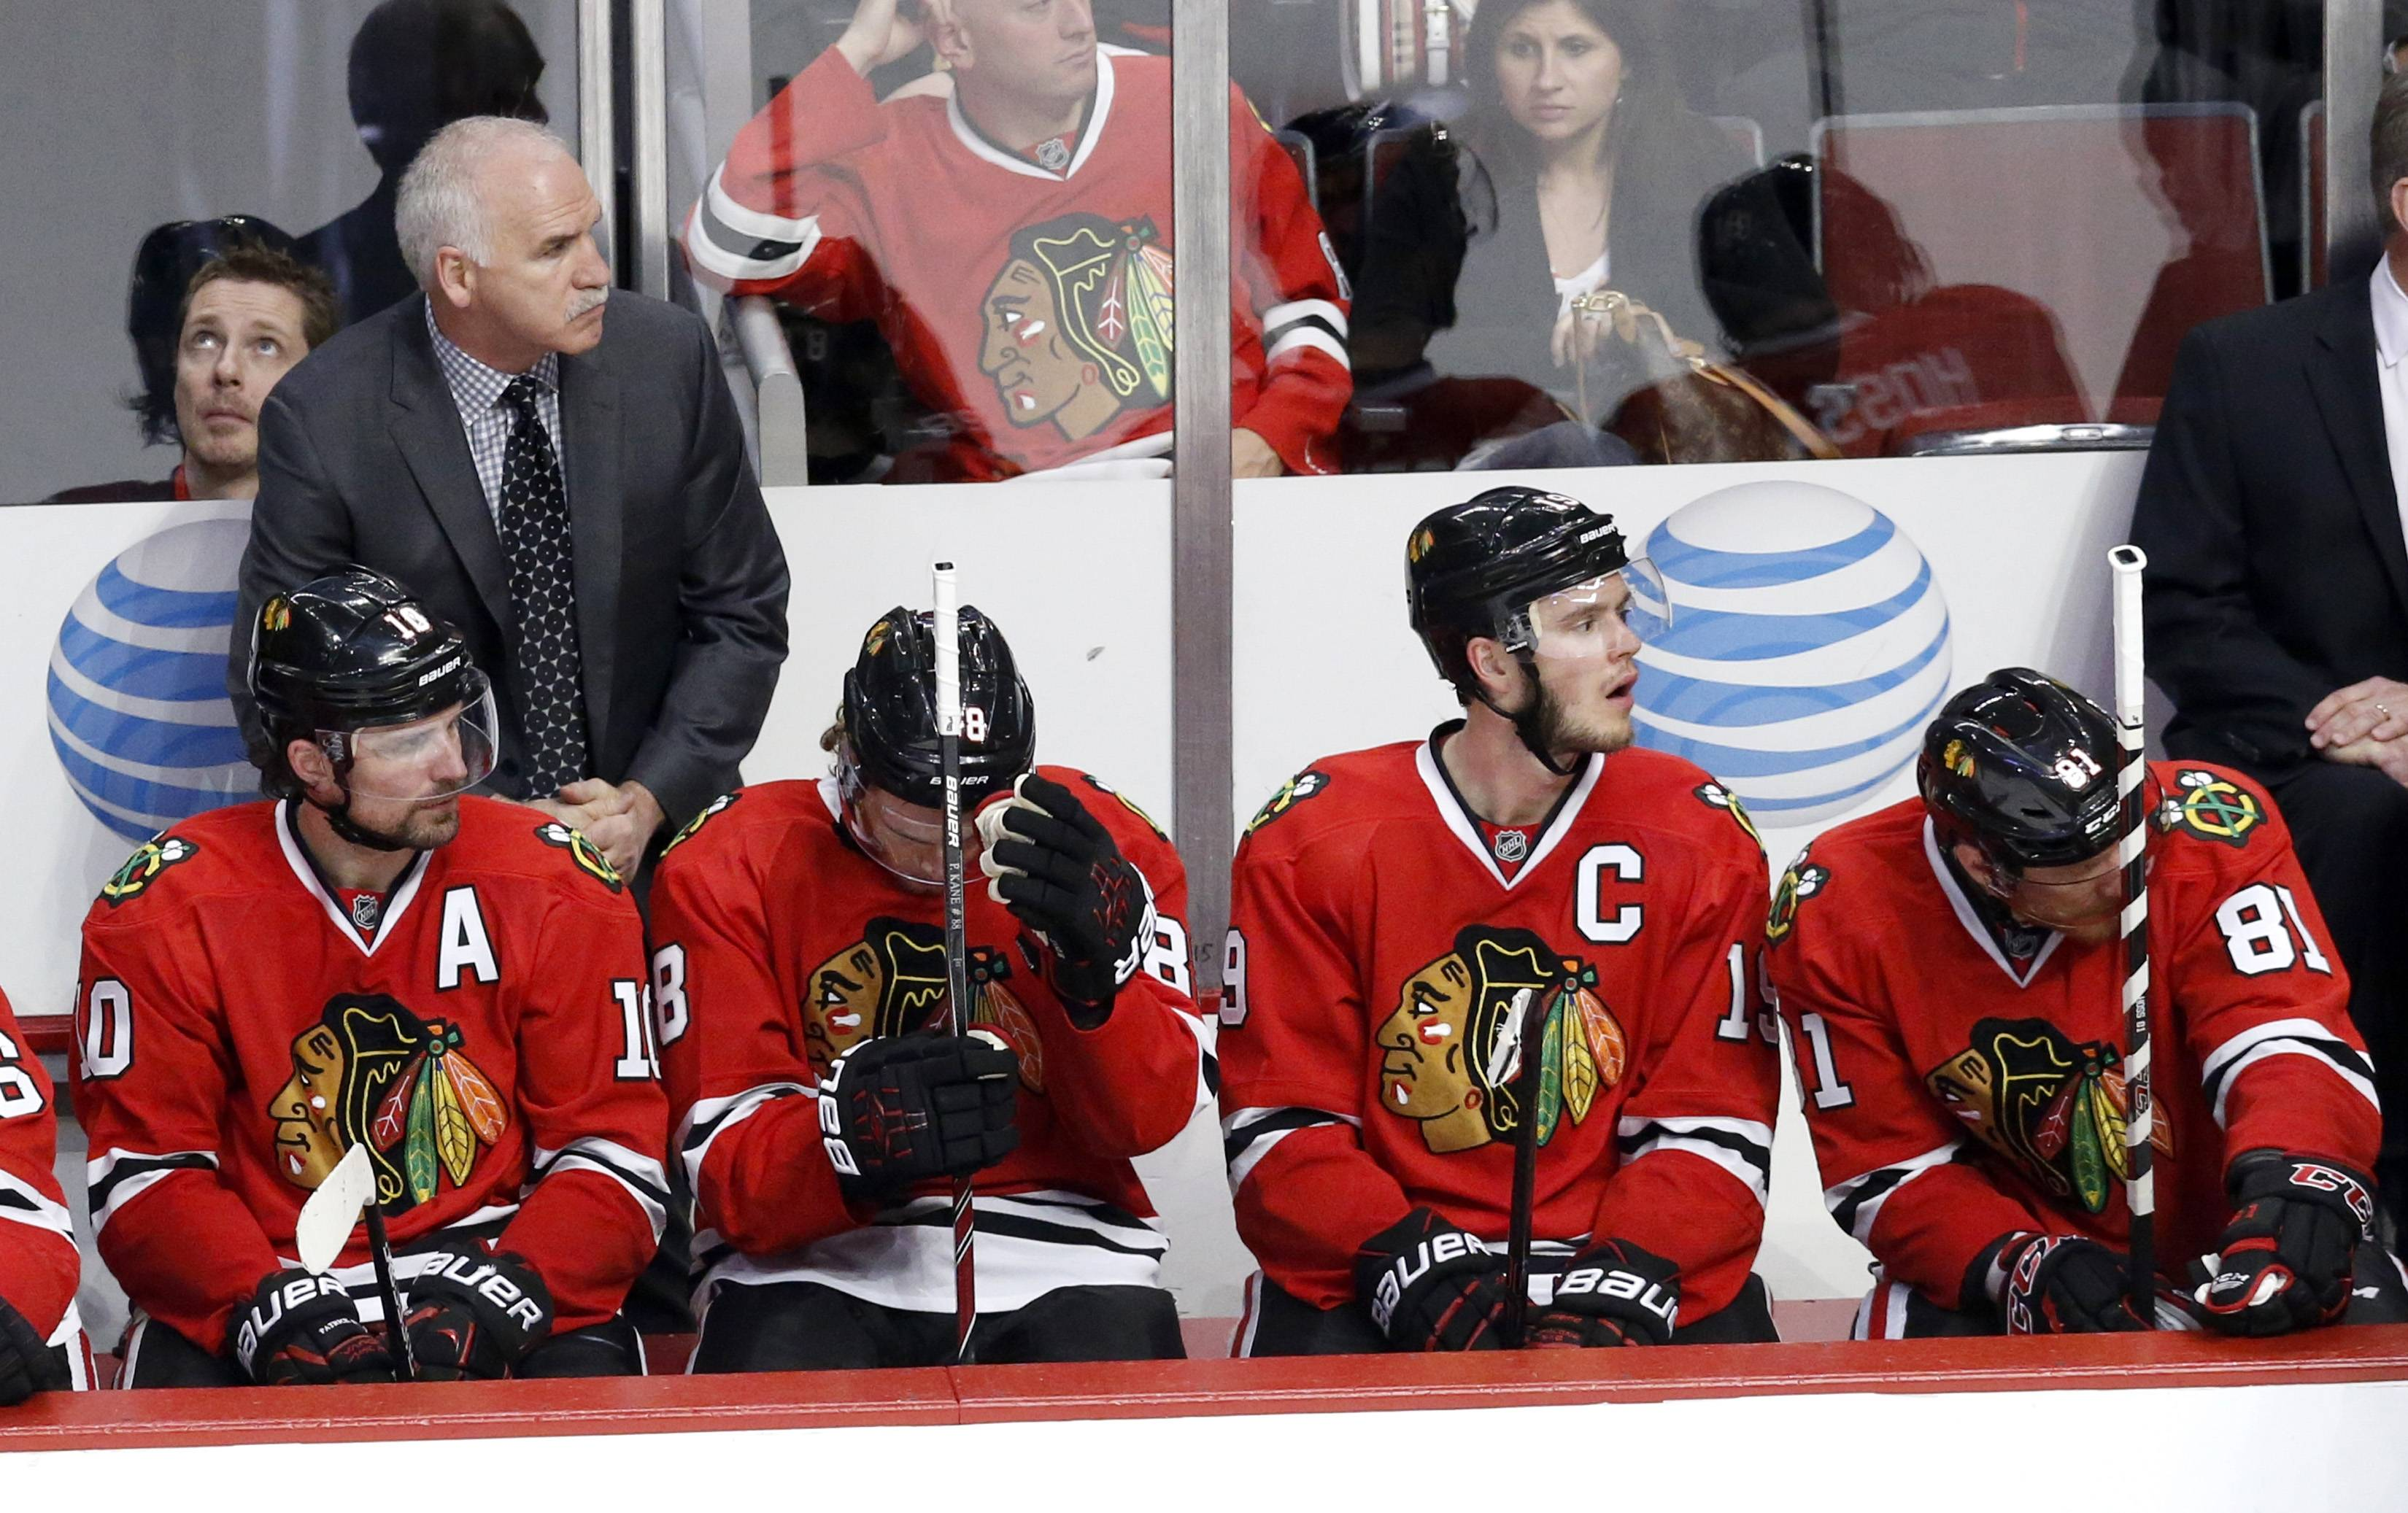 Coach Joel Quenneville and the Blackhawks look to bounce back from their 6-2 loss Wednesday when the series shifts to Los Angeles for Game 3 on Saturday night.